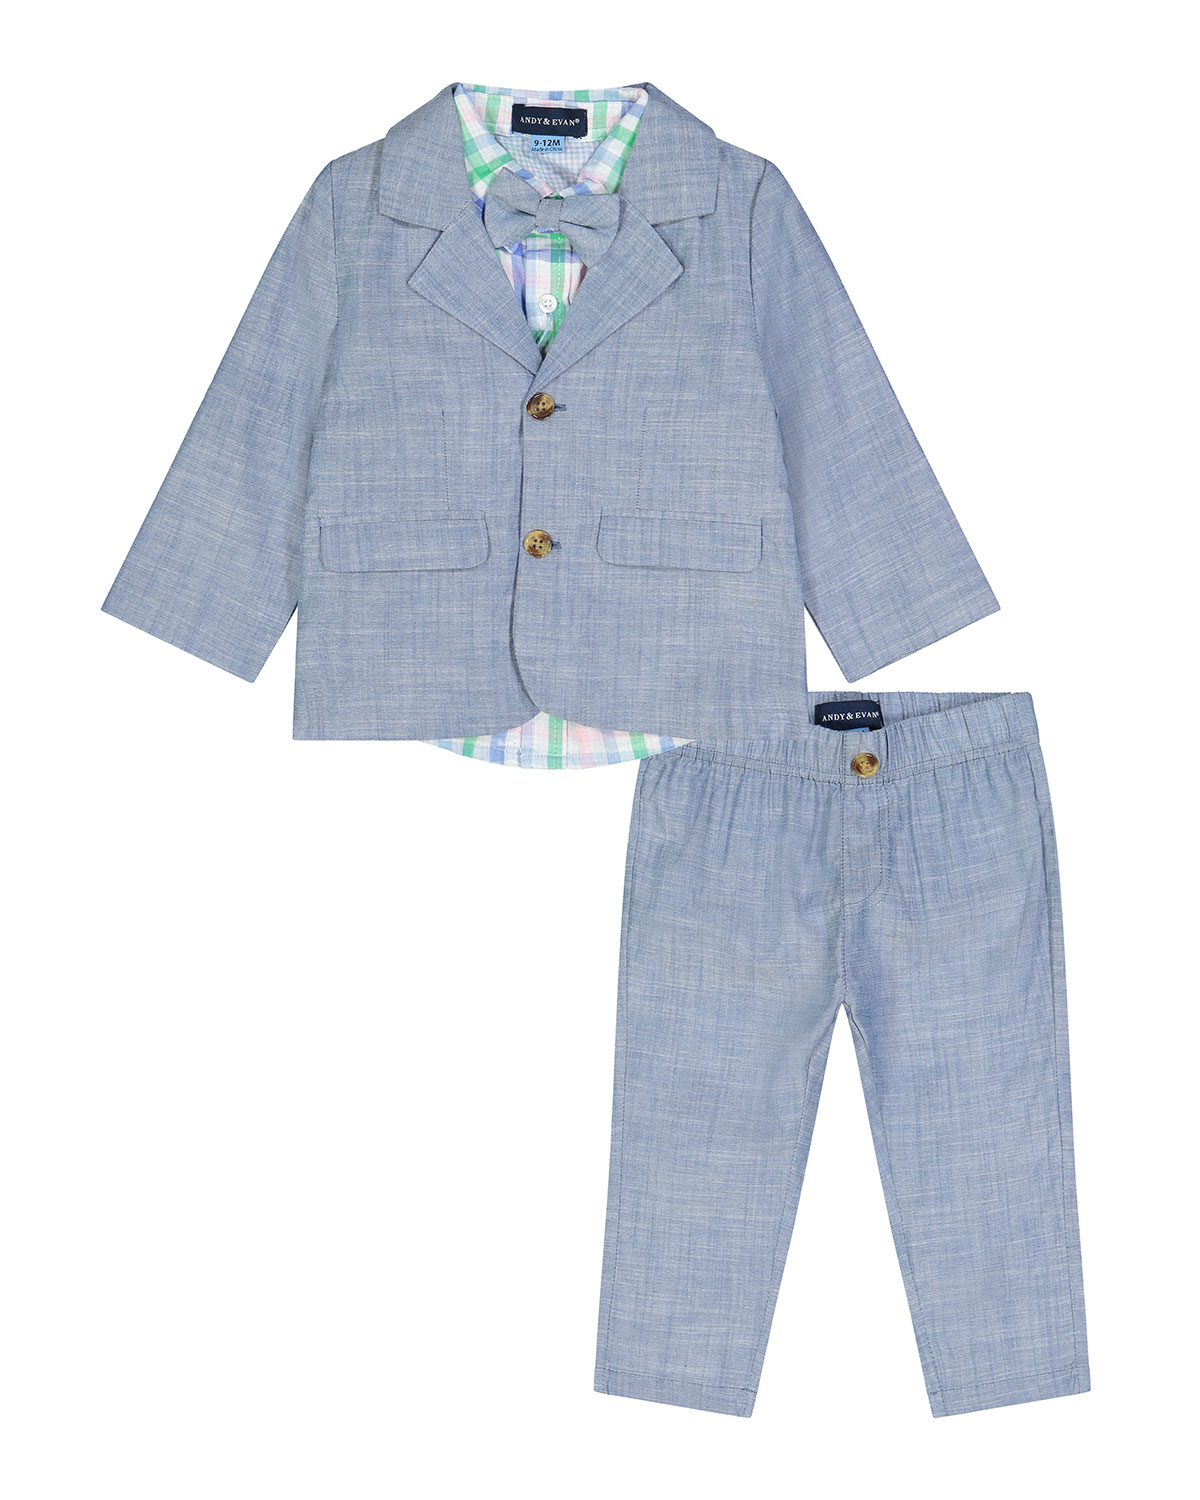 Boy's 3-Piece Chambray and Plaid Suit Set